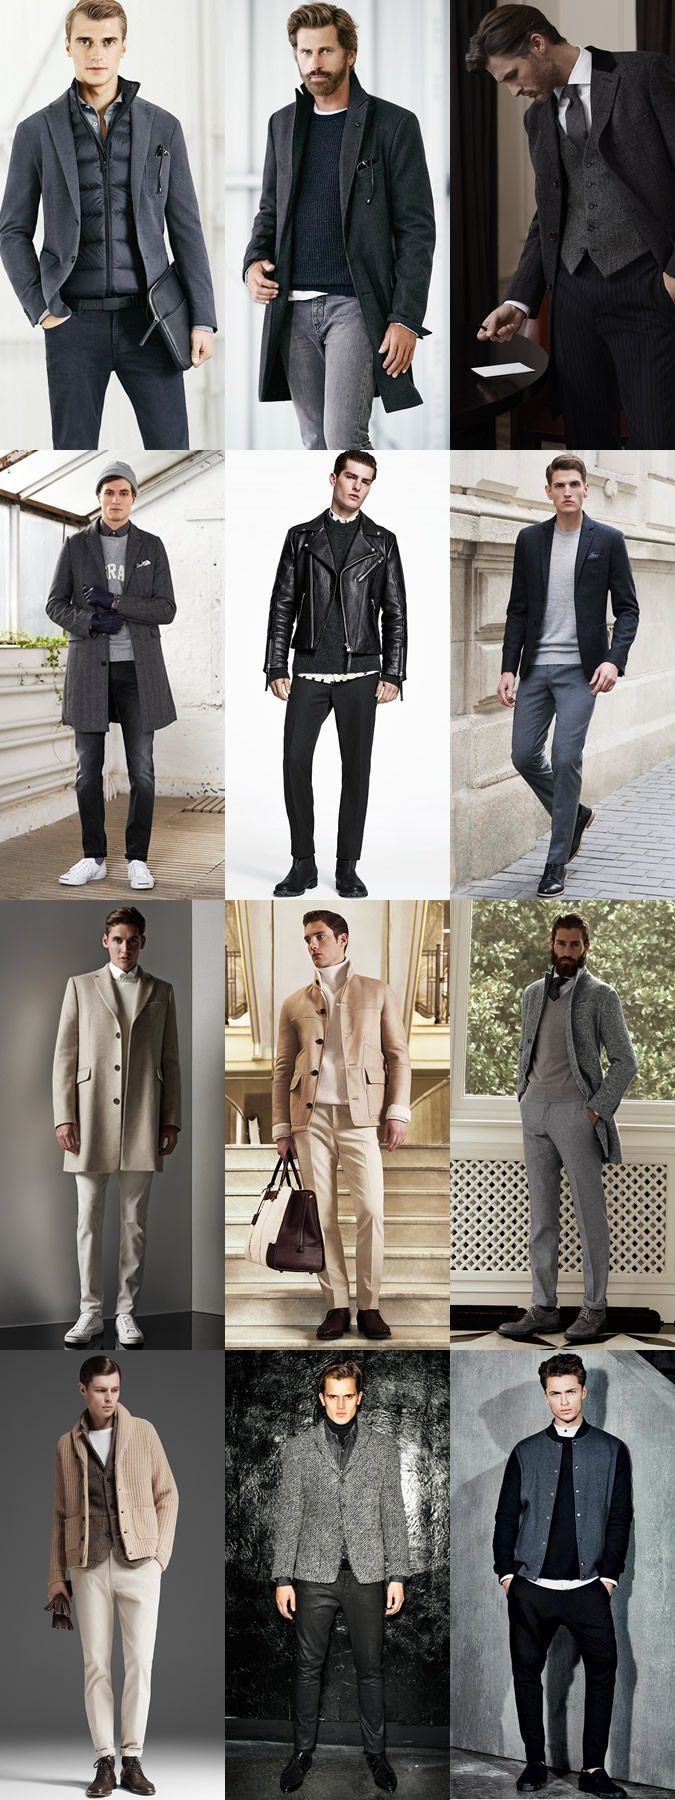 5 Key Men's 2015 Autumn/Winter Fashion Trends From London Collections: Key Look - Head-To-Toe Neutrals, Wear It Now Lookbook Inspiration